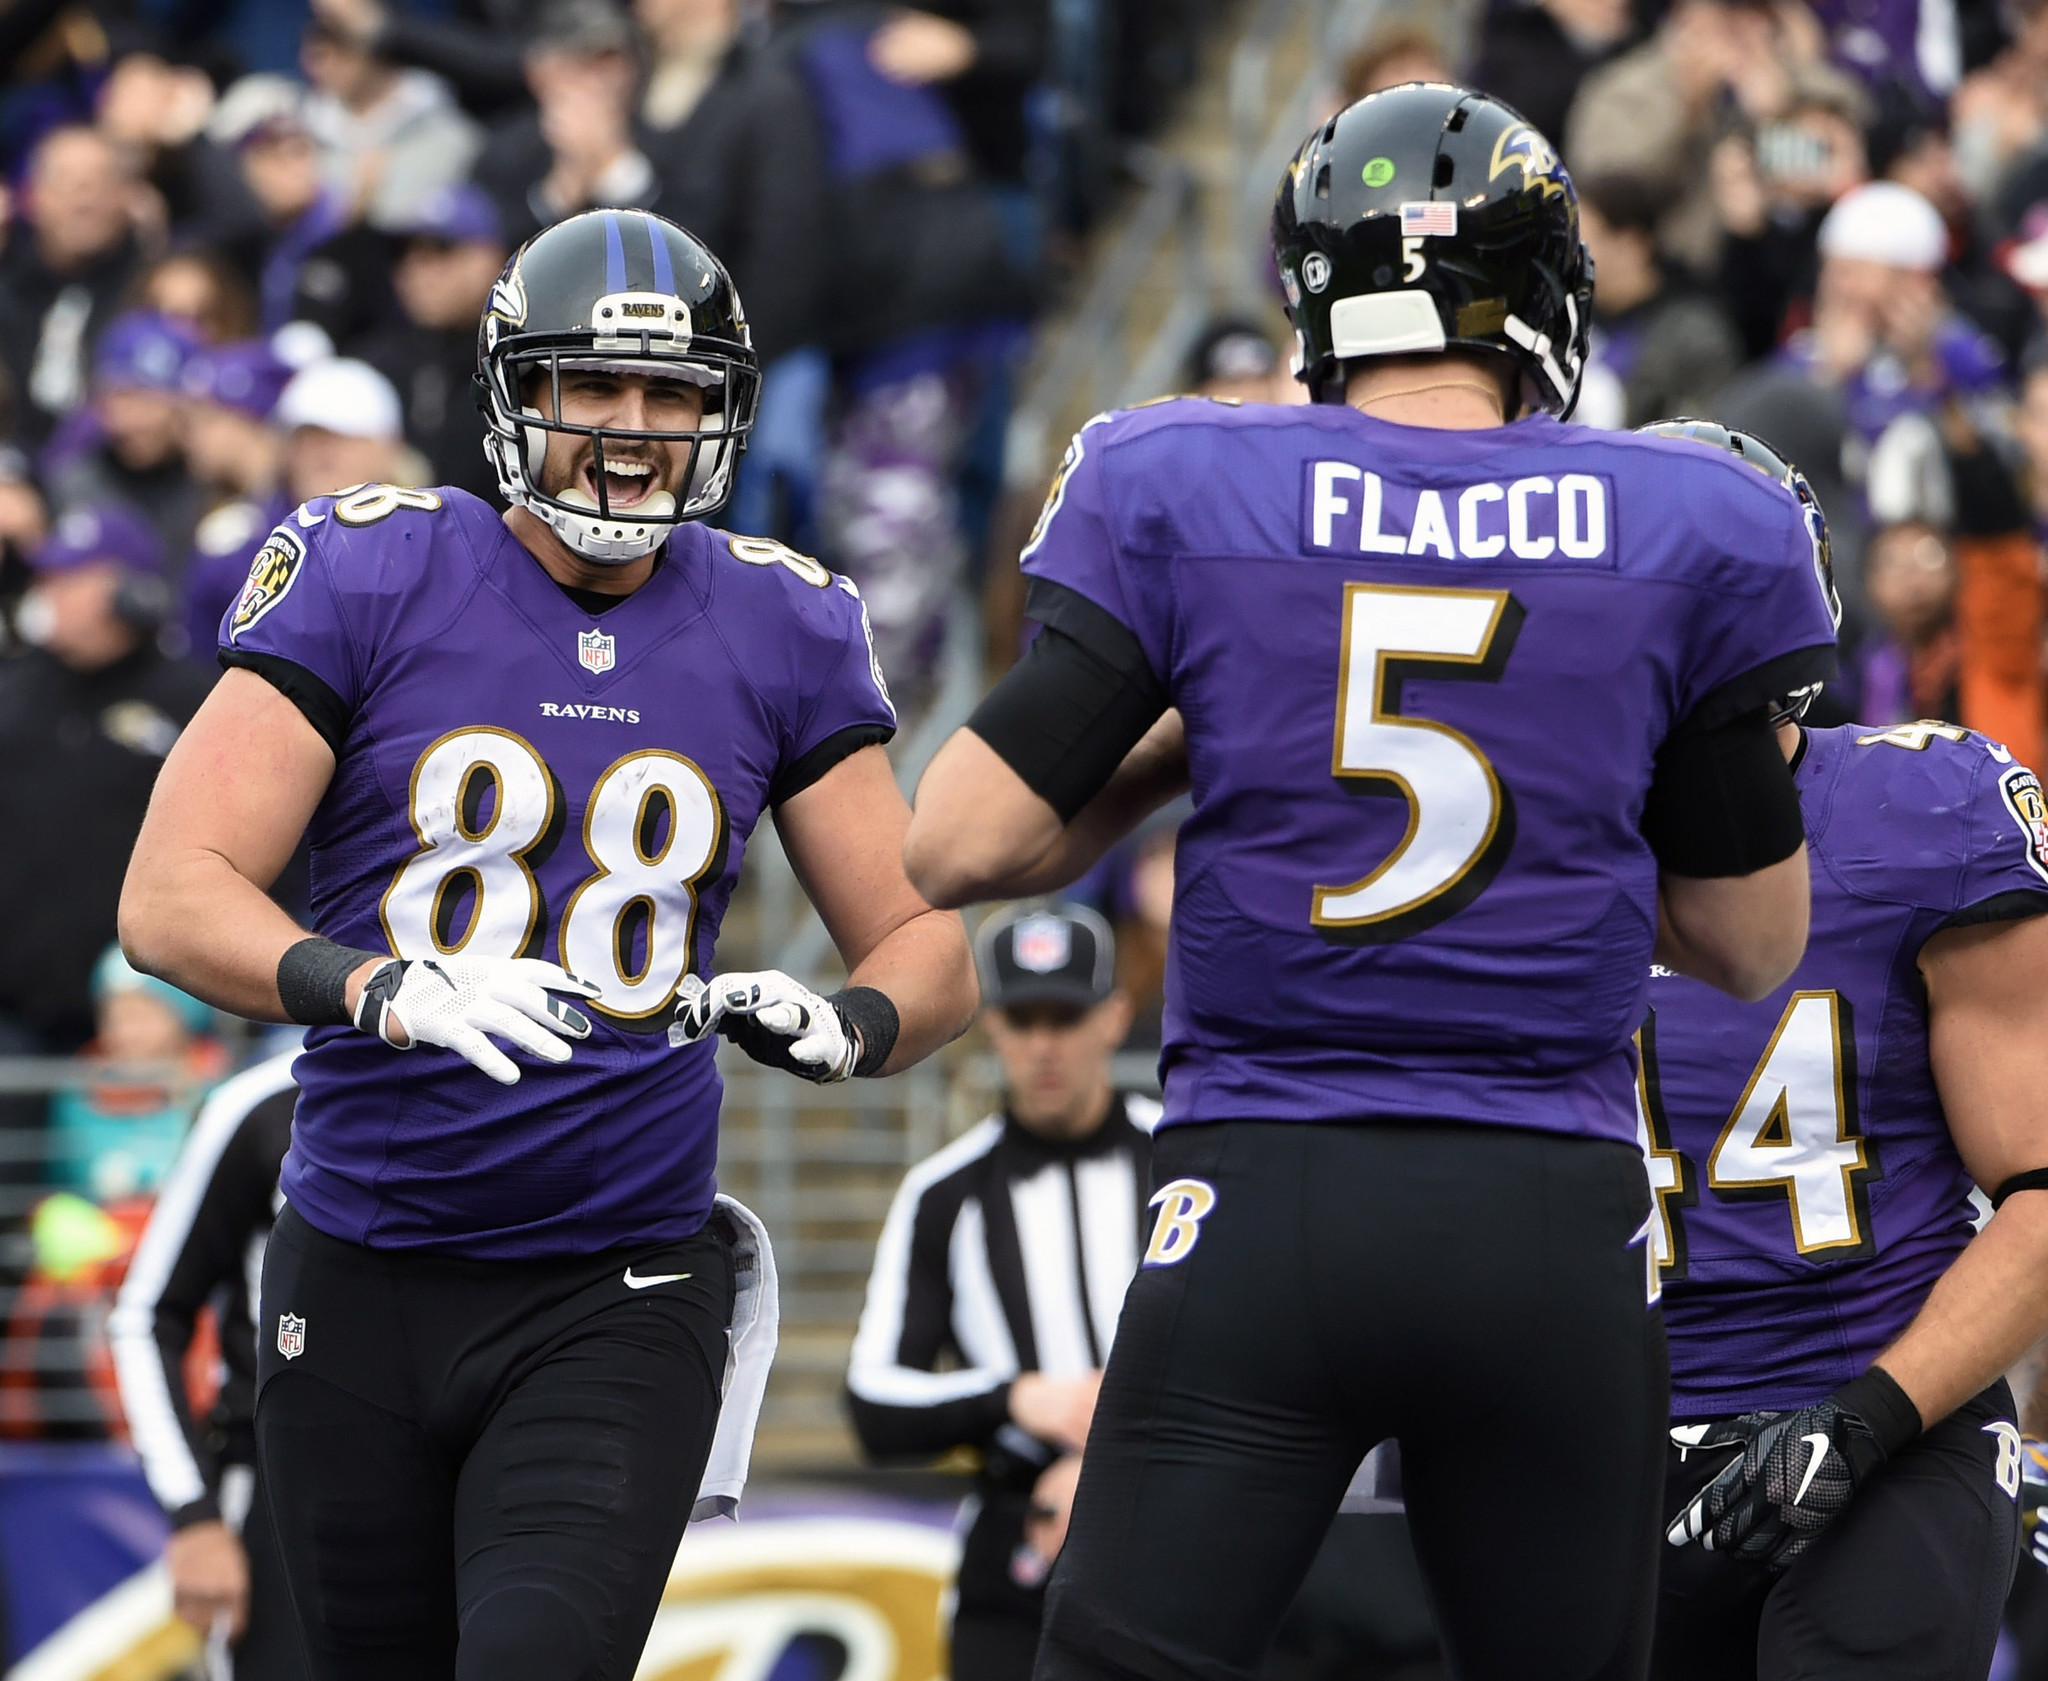 Bal-ravens-tight-end-dennis-pitta-anticipating-a-lot-of-defensive-attention-from-patriots-20161208